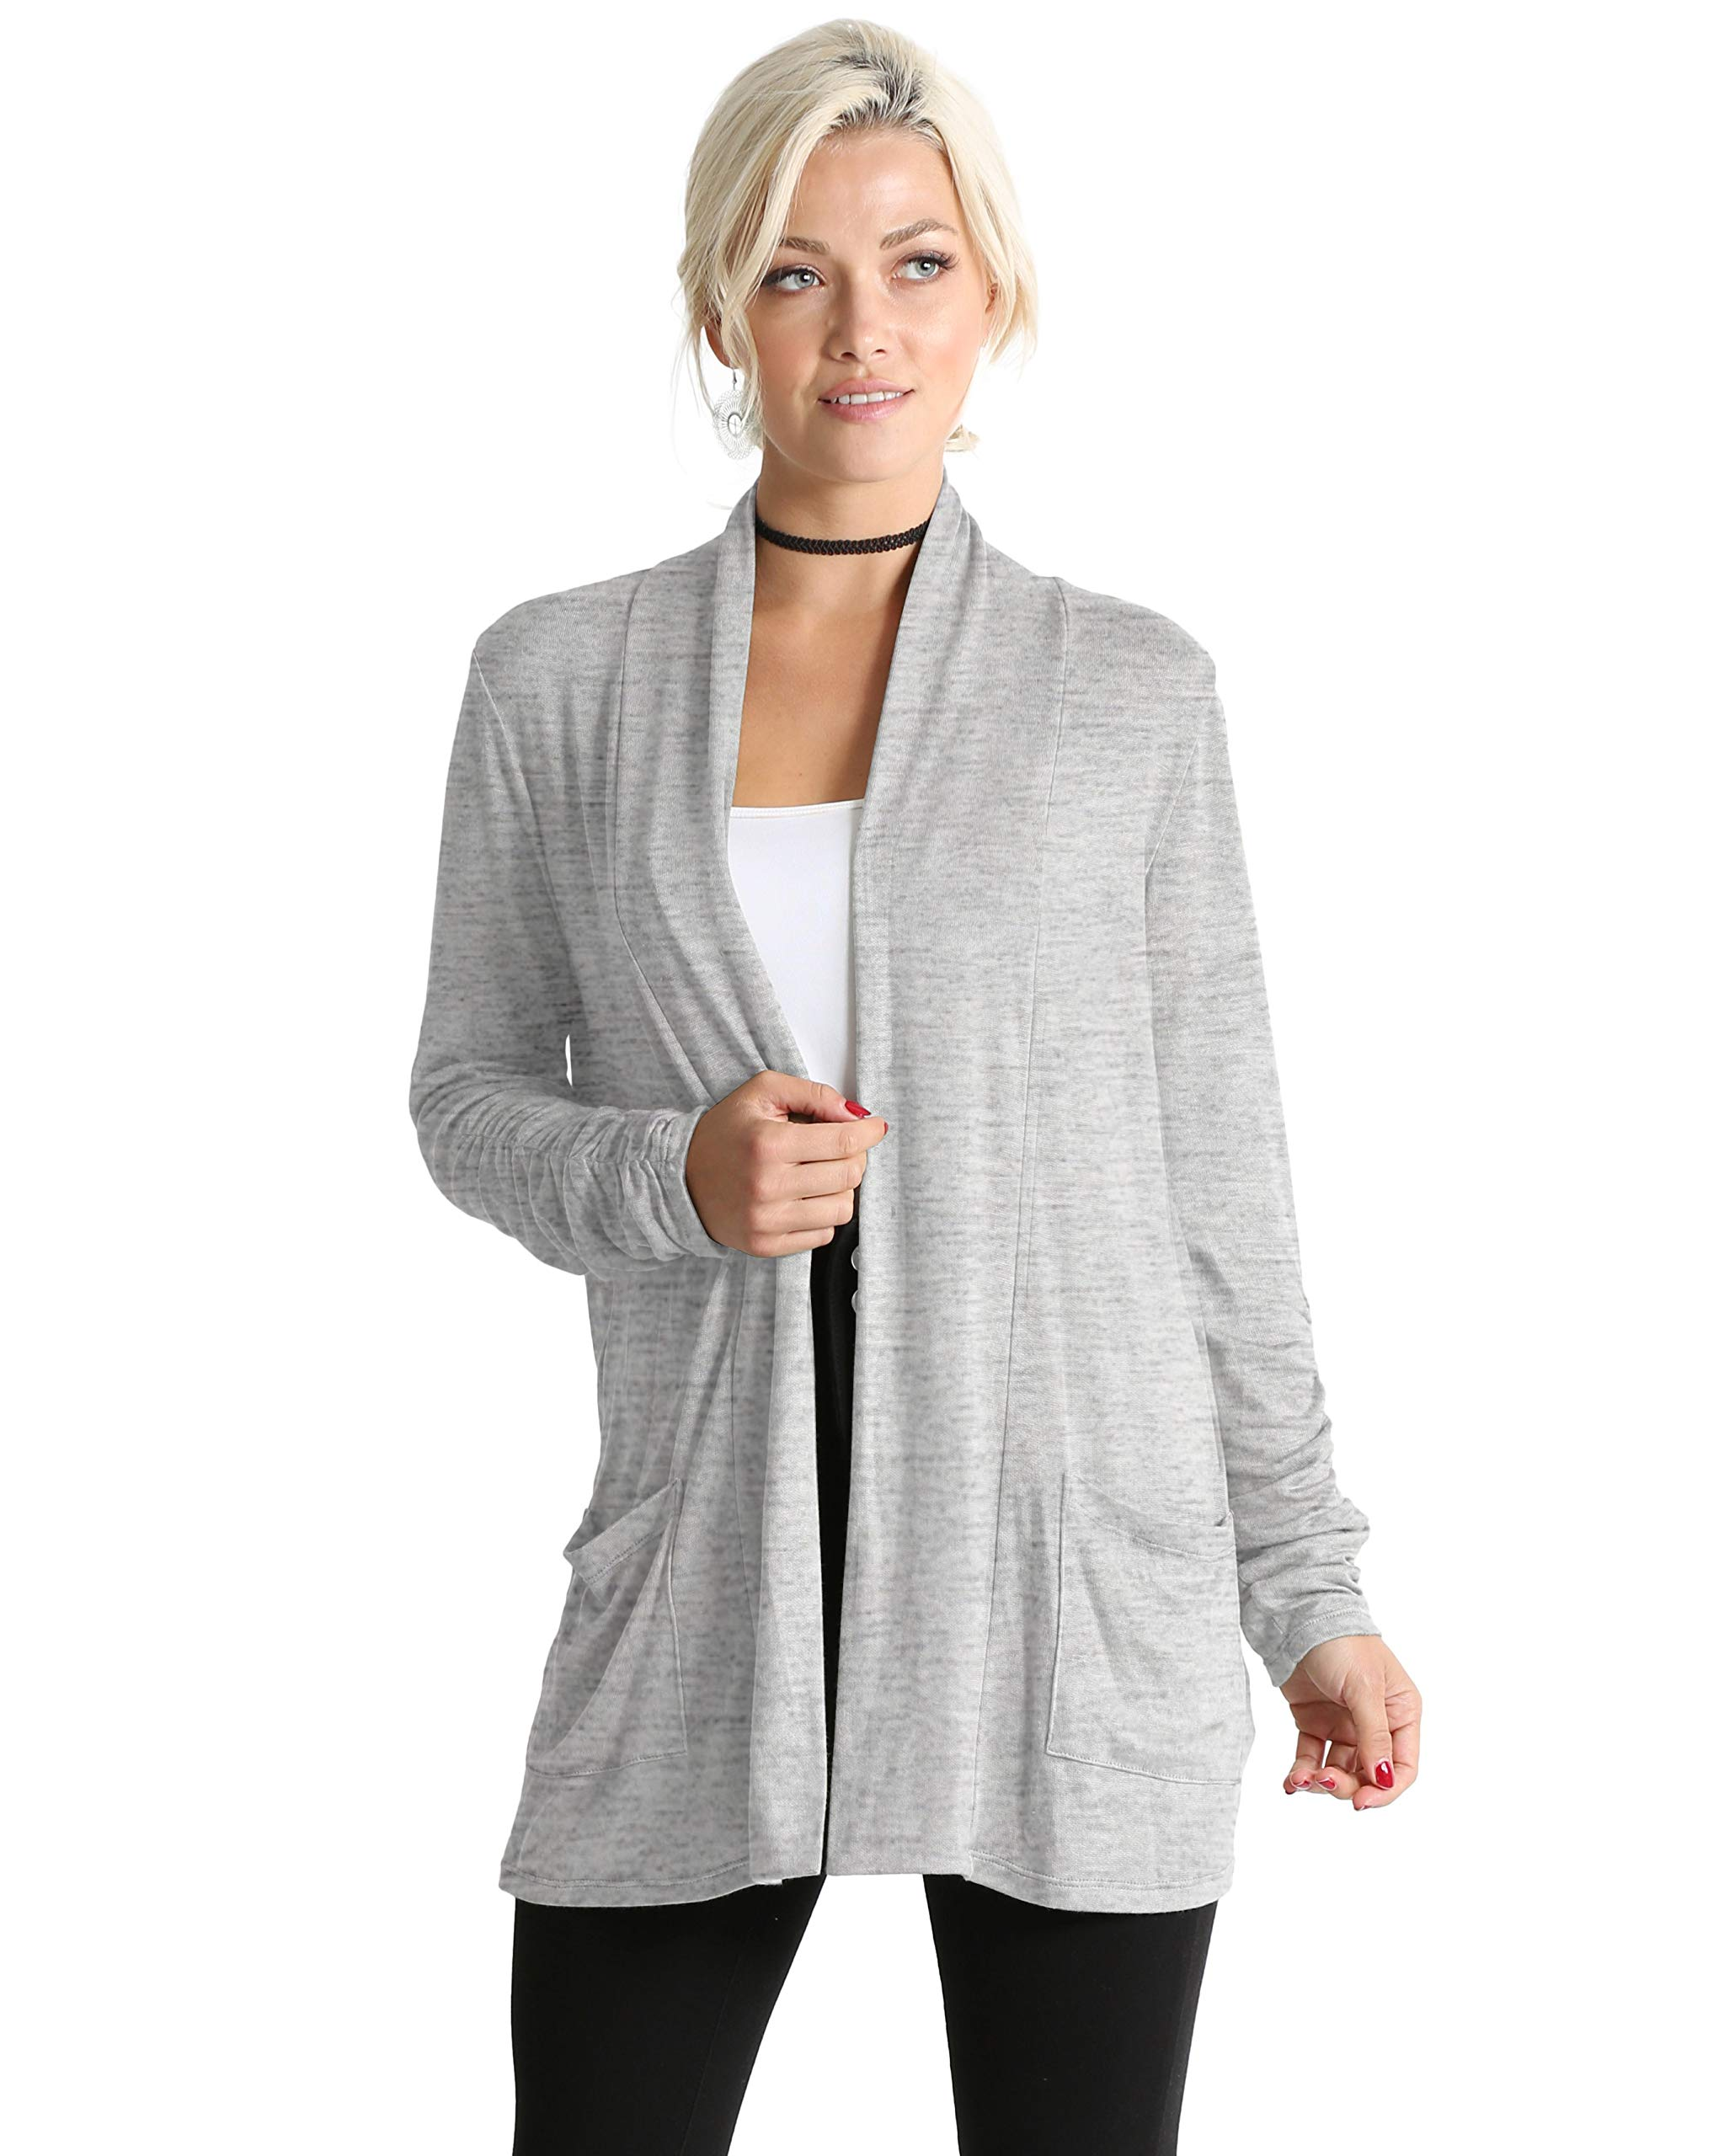 Simlu Long Sleeve Cardigan Sweater for Women with Pockets - Made in USA (Size Small US 2-4, Heather Grey)